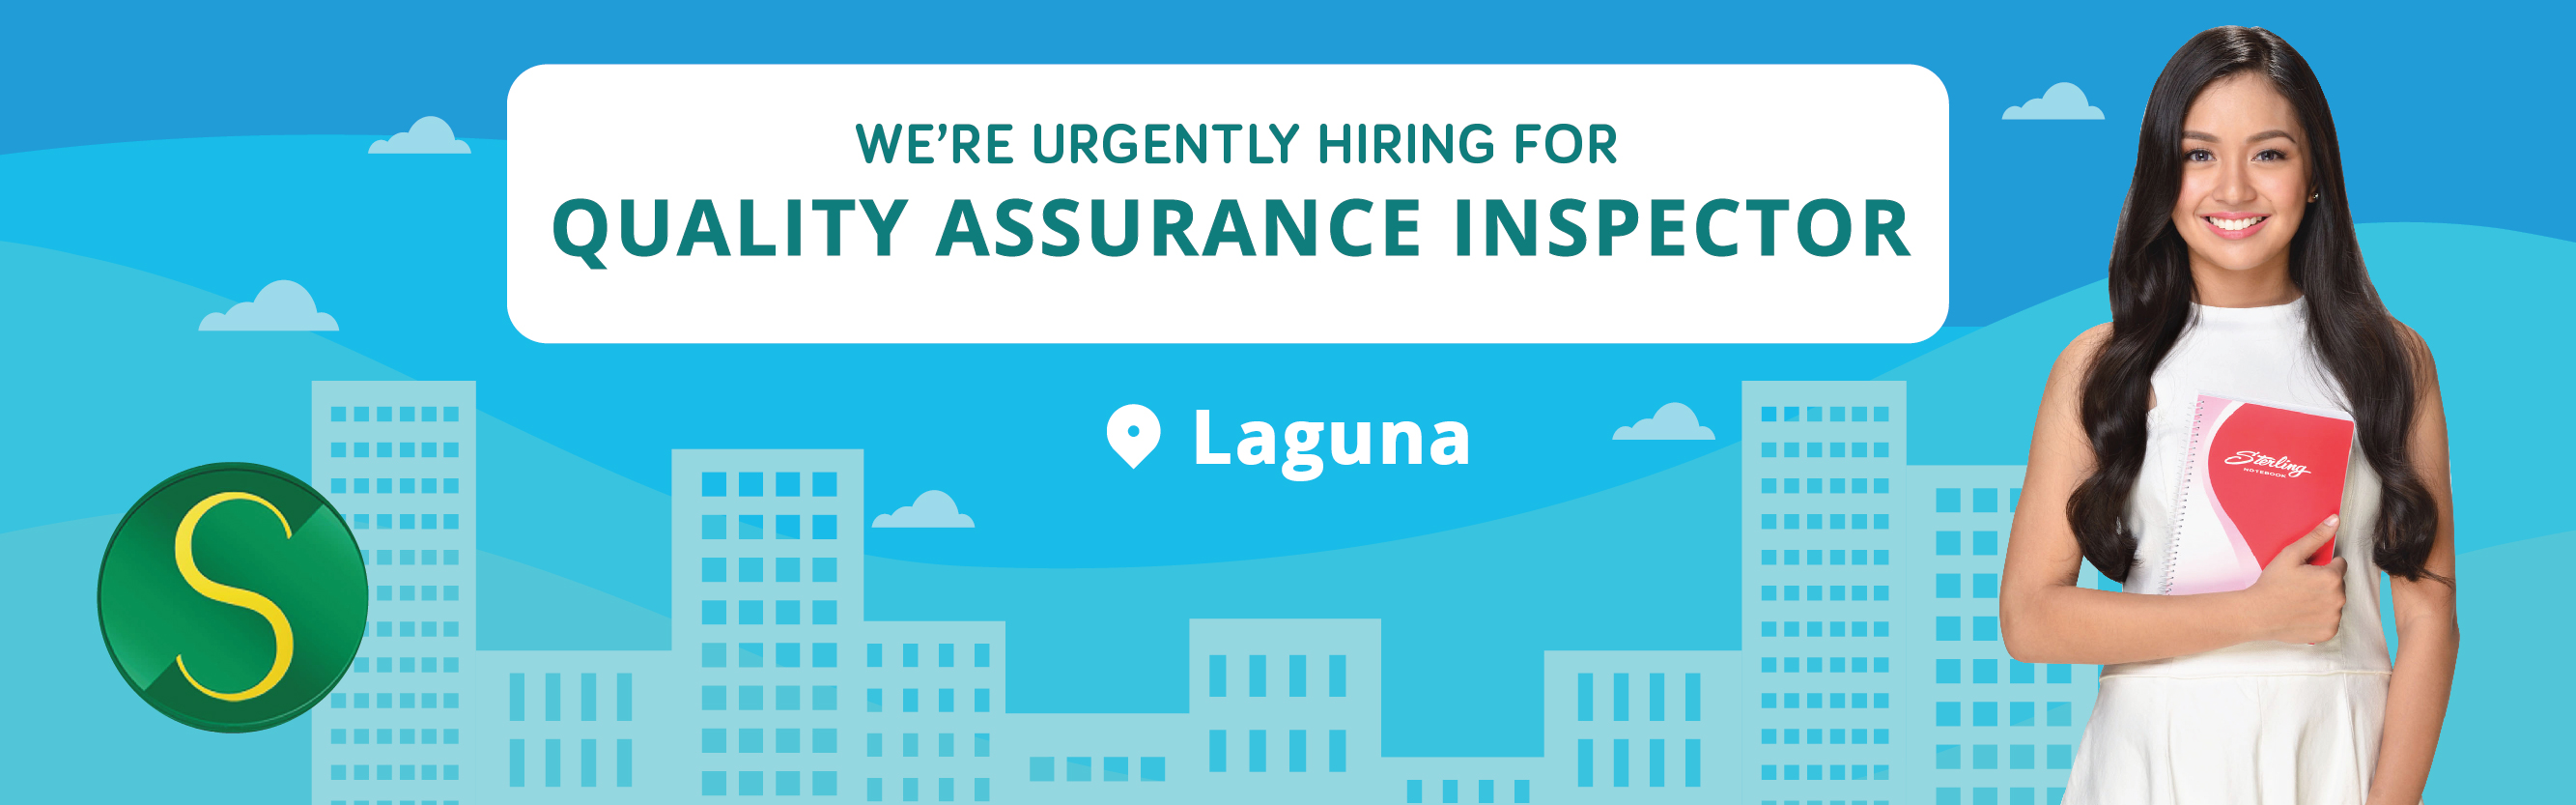 Quality Assurance Inspector (laguna Based) from Sterling Paper Group of Companies